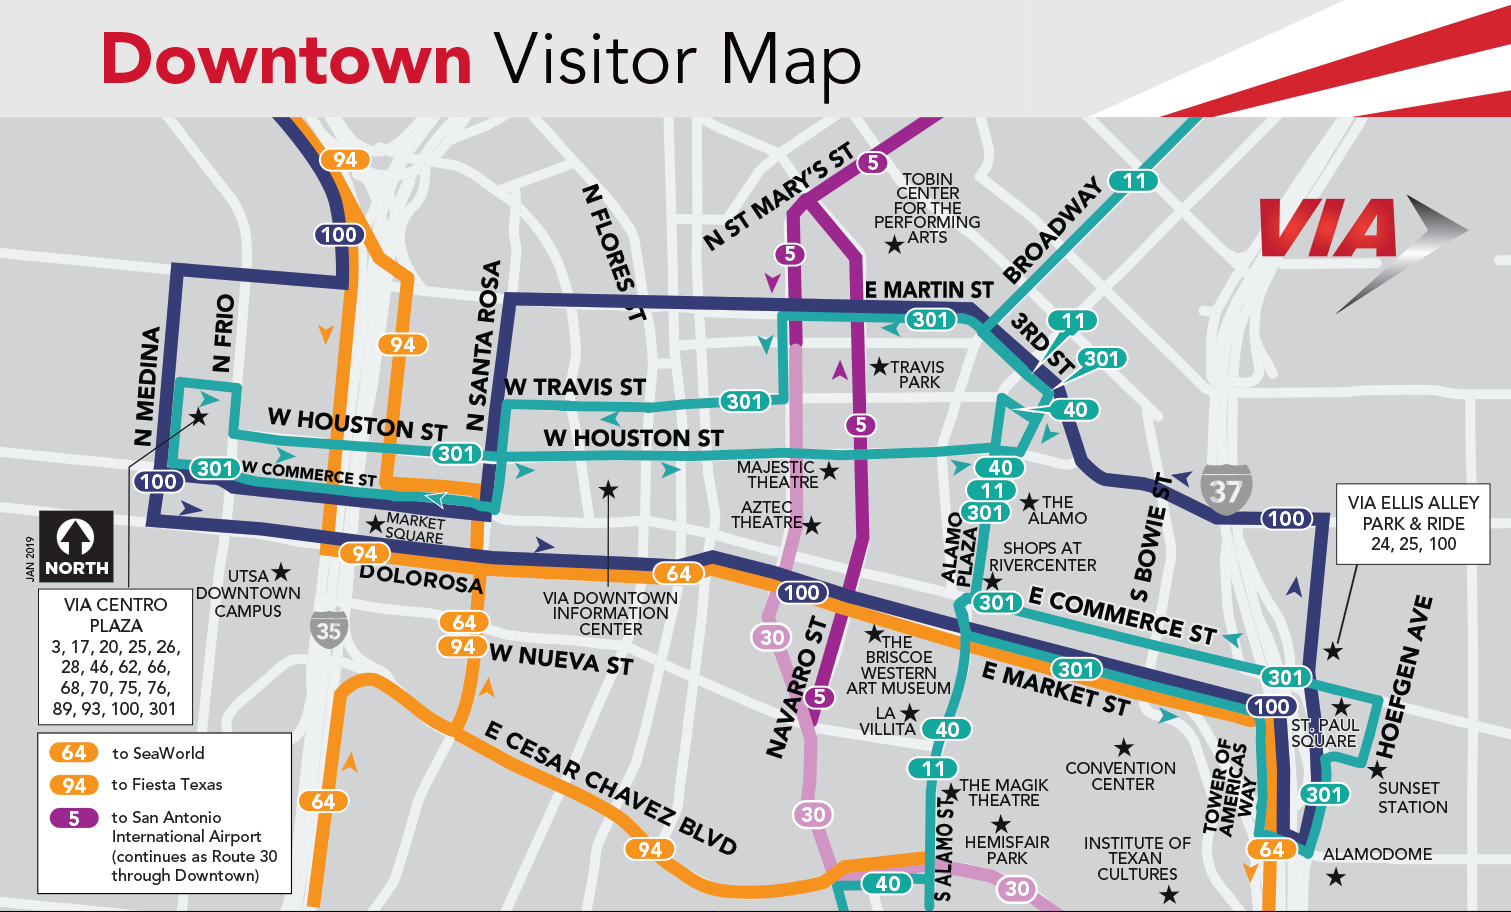 VIA19_Downtown Visitor Map JAN - VIA Metropolitan Transit on santa barbara bus map, shenzhen bus map, wisconsin bus map, old san juan bus map, california bus map, sitka bus map, mobile bus map, grapevine bus map, louisville bus map, santa rosa bus map, brazos river texas lakes map, racine bus map, houston bus map, chapel hill bus map, dayton bus map, austin bus map, salt lake city bus map, utah bus map, st paul bus map, santa ana bus map,